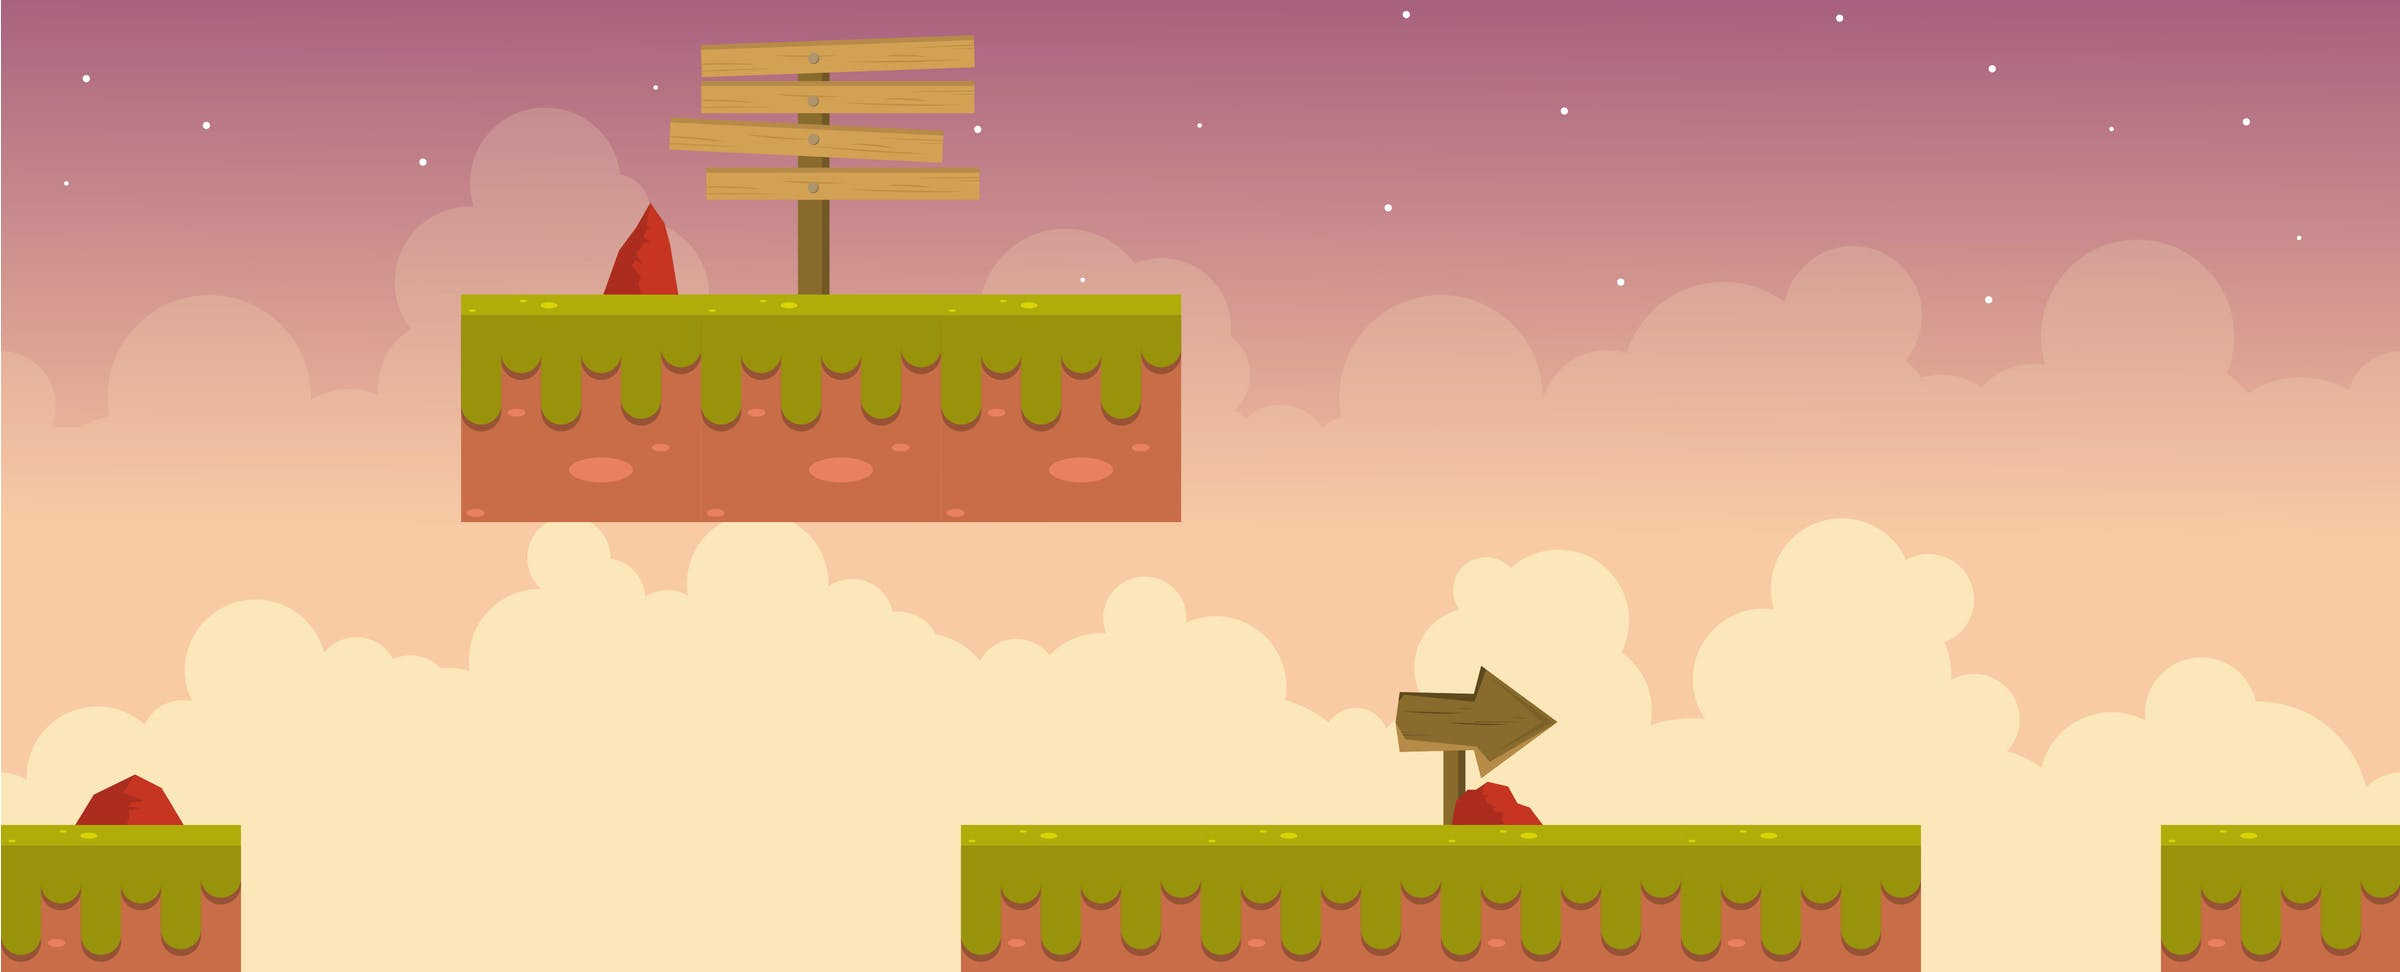 Can Designing Video Games Help Kids Gain Hard and Soft Skills?